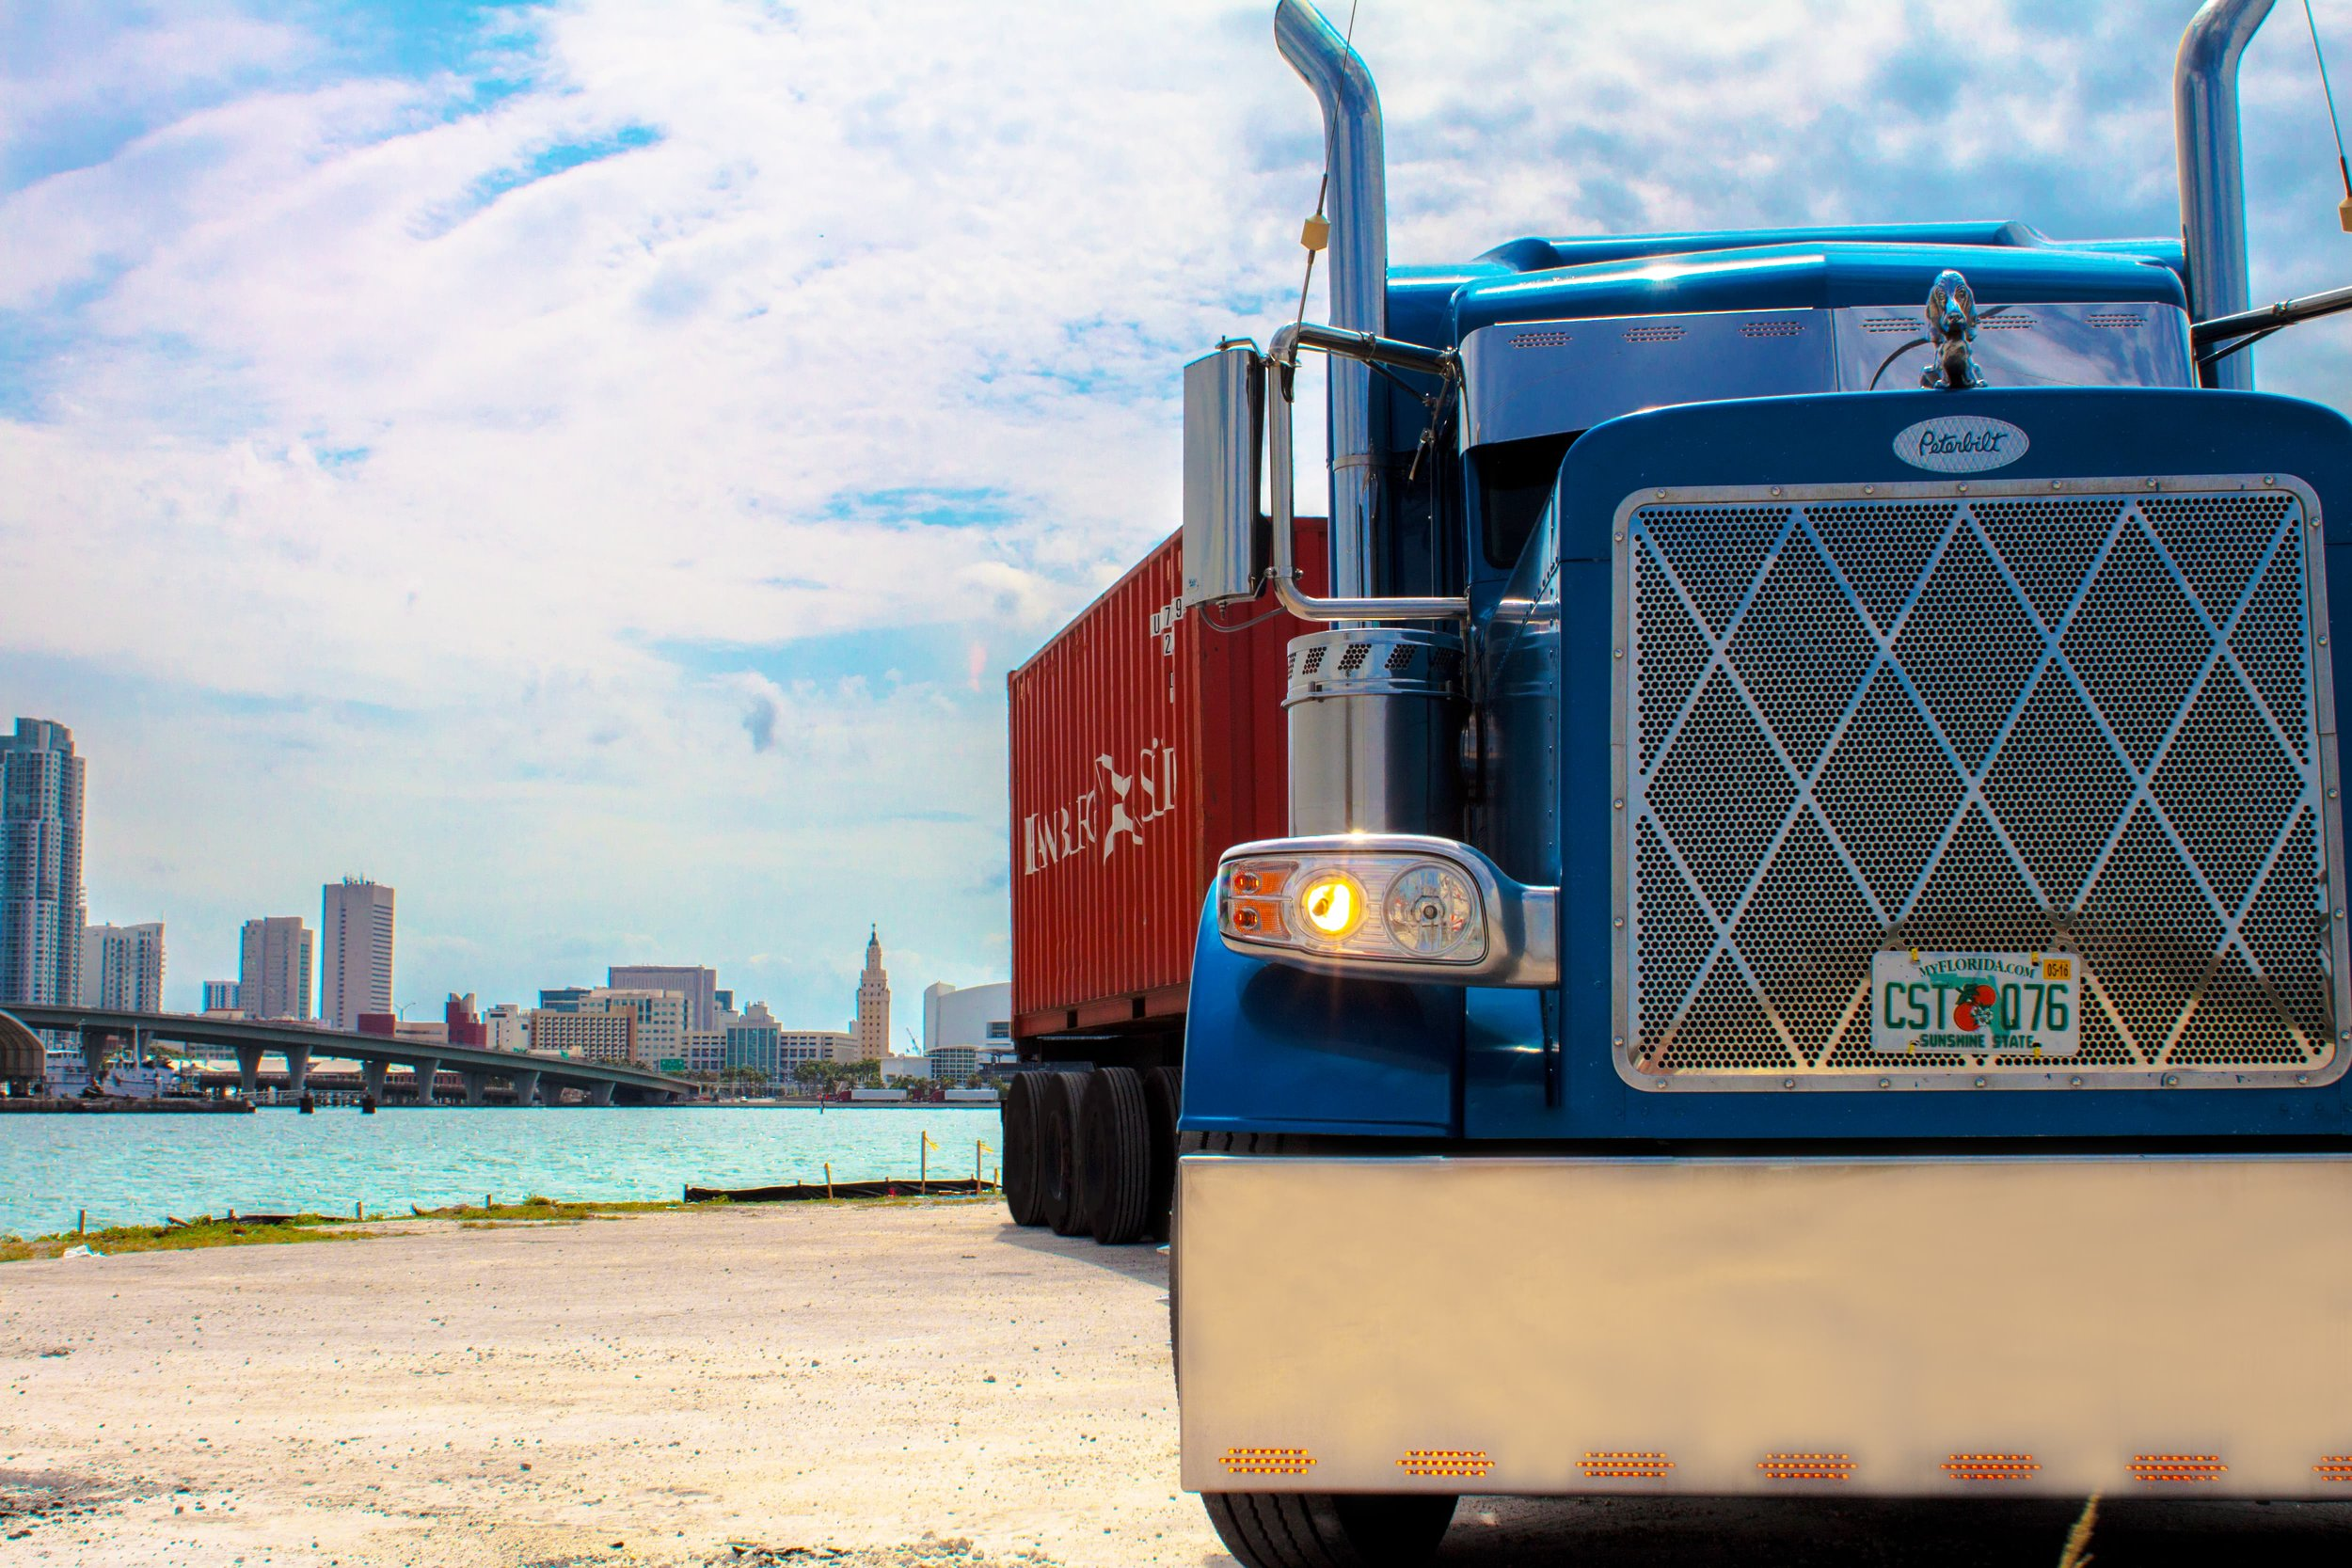 BOS Transport Truck with the view of Miami.